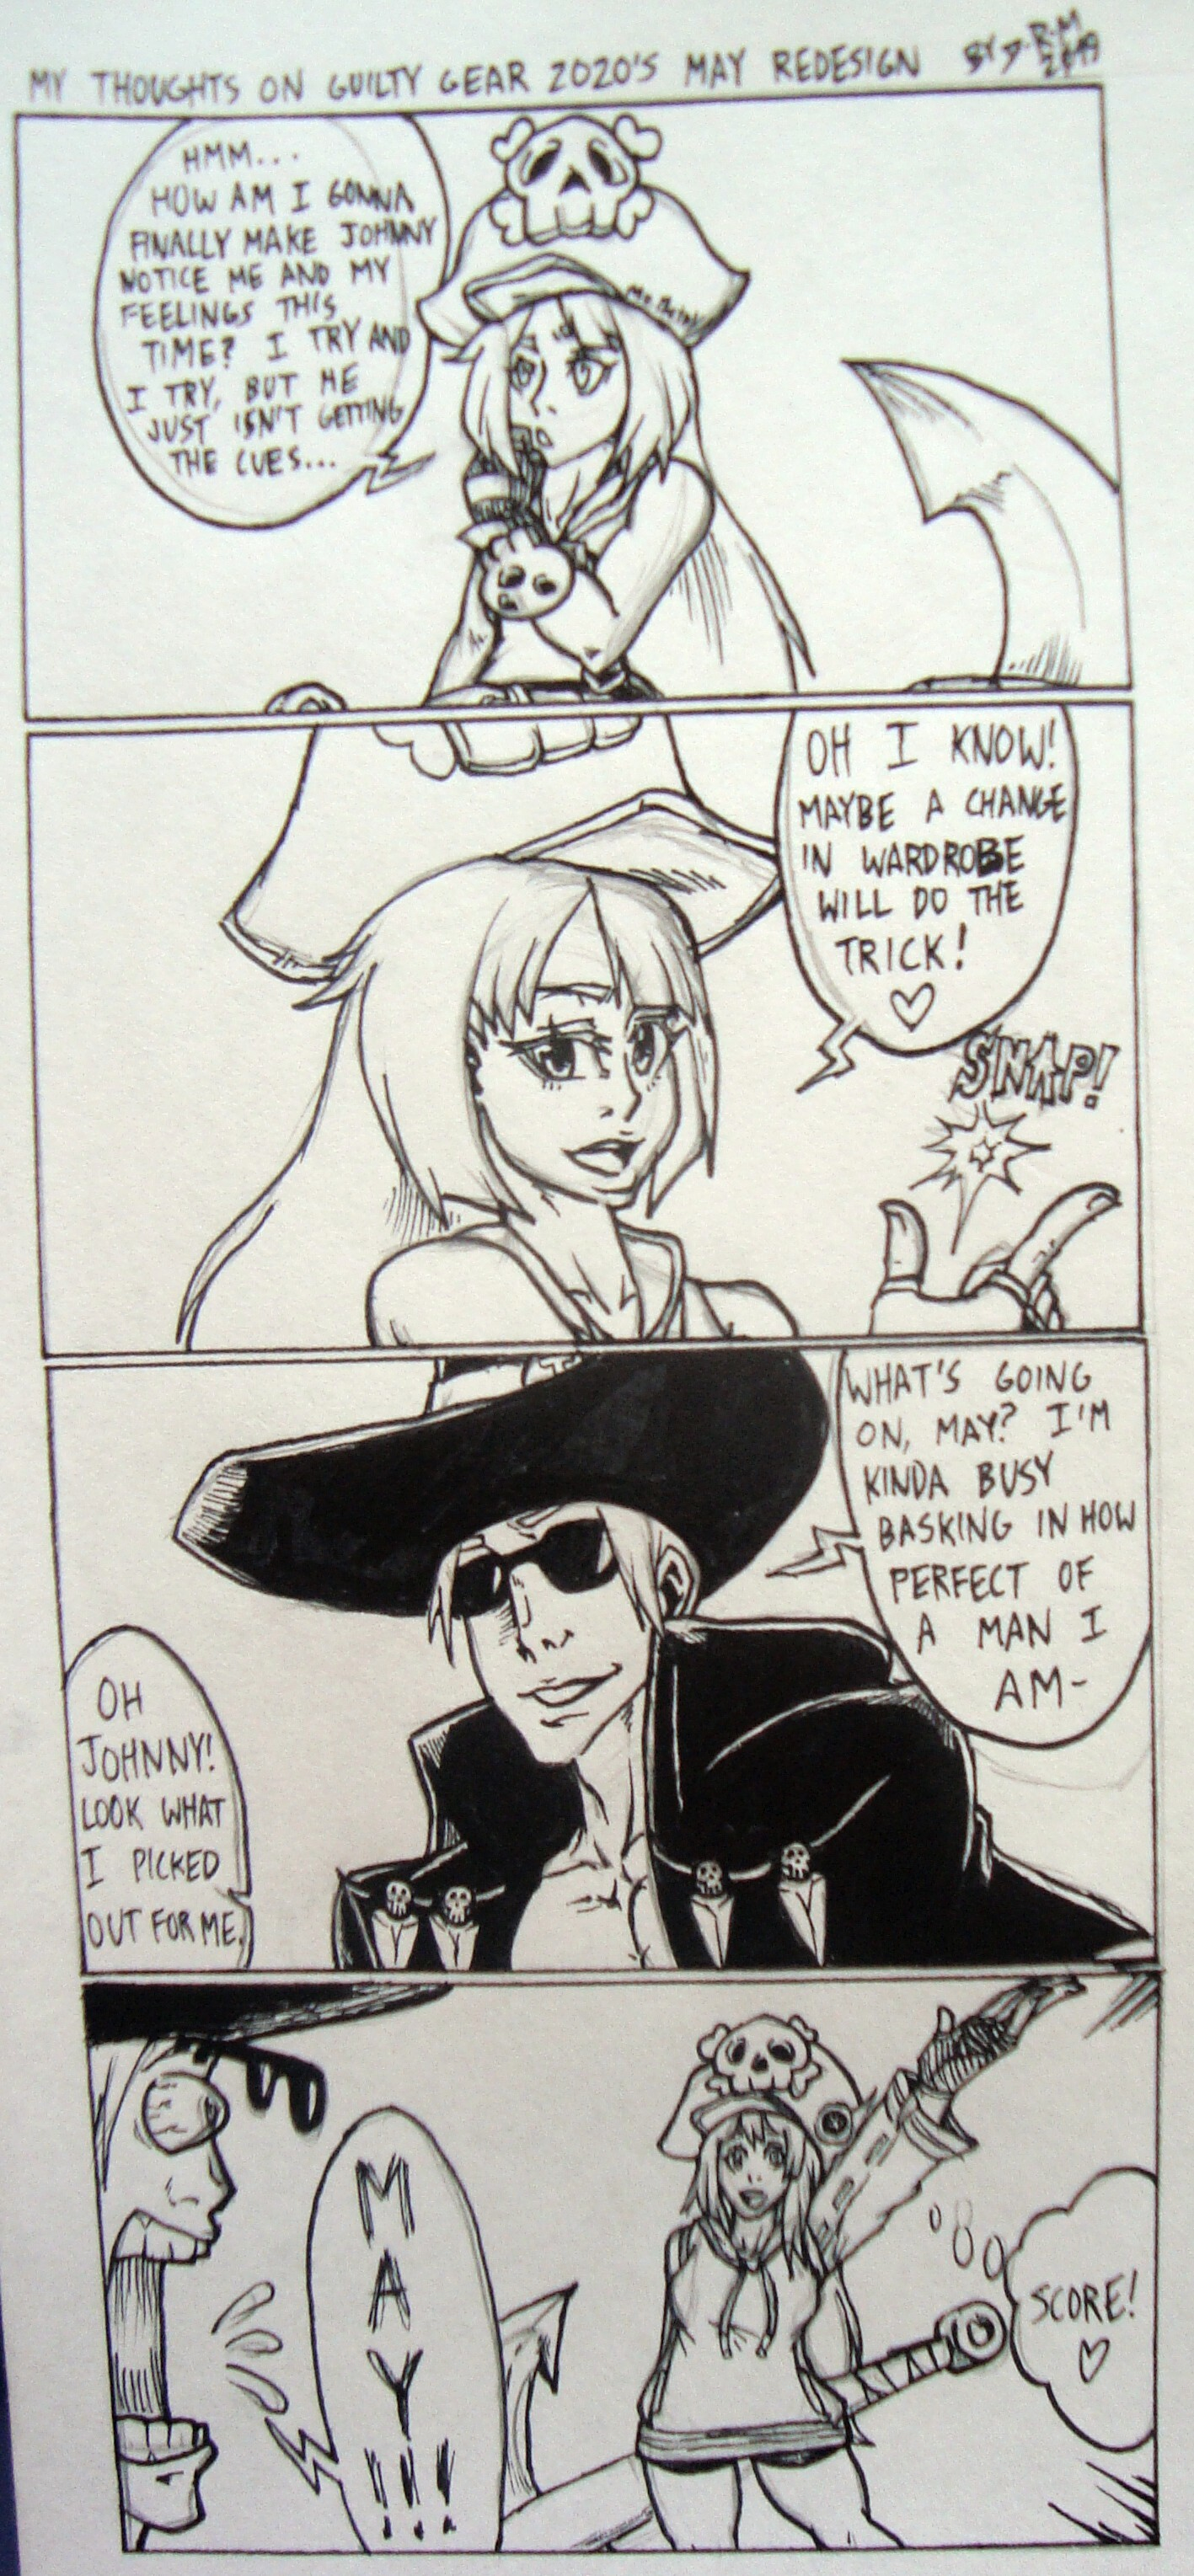 My Thought's on Guilty Gear 2020's Redesign of May